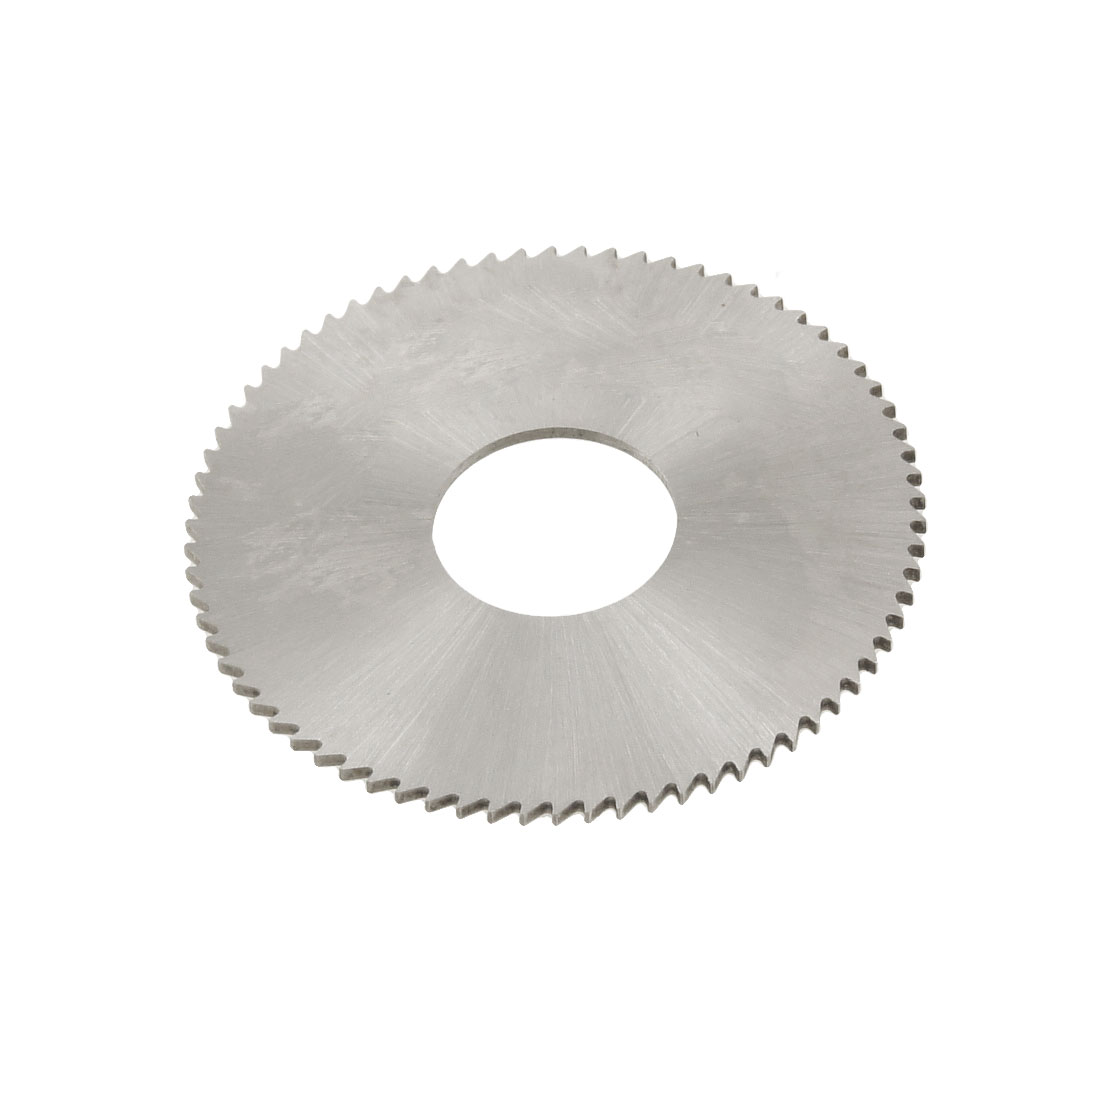 40mm x 1mm x 13mm HSS 72T Slitting Saw Blade Cutting Tool